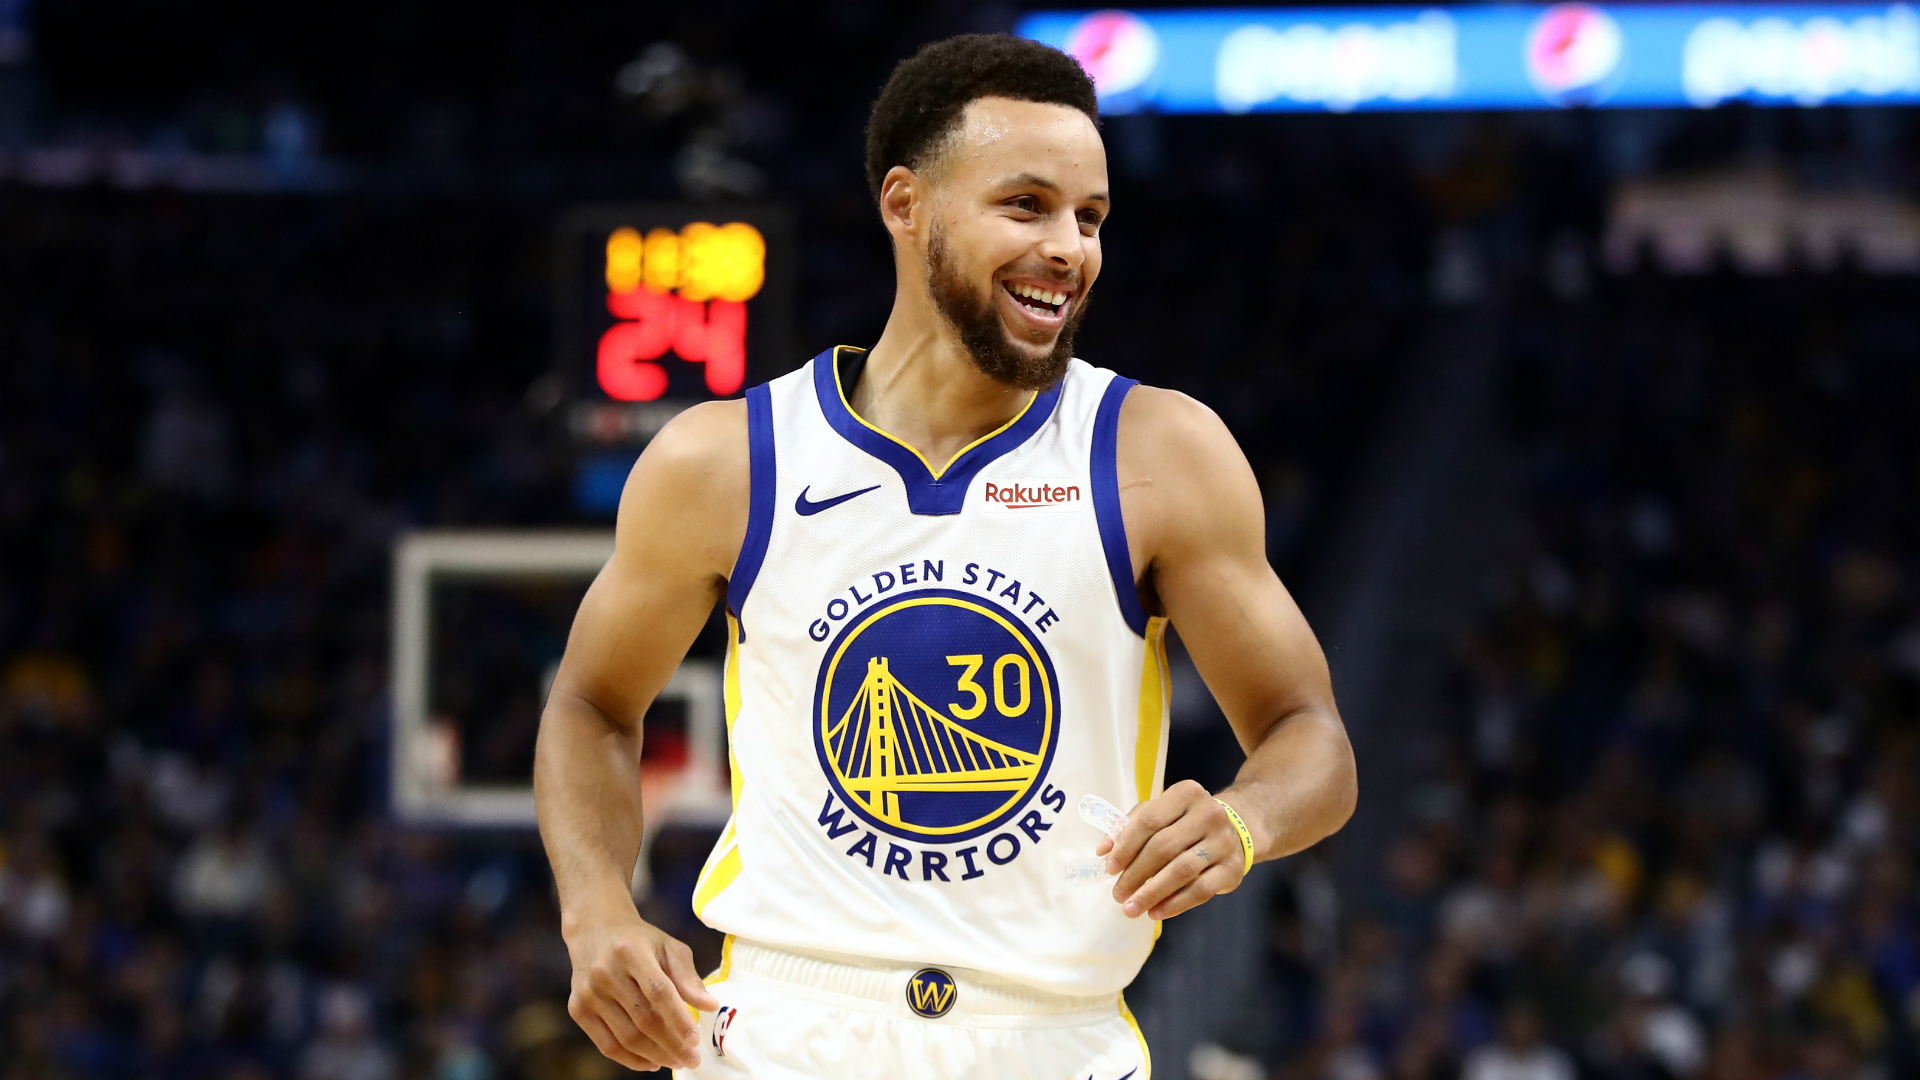 Stephen Curry's three NBA titles and two MVPs are not enough for him to be seen as a Hall of Famer, according to Michael Jordan.